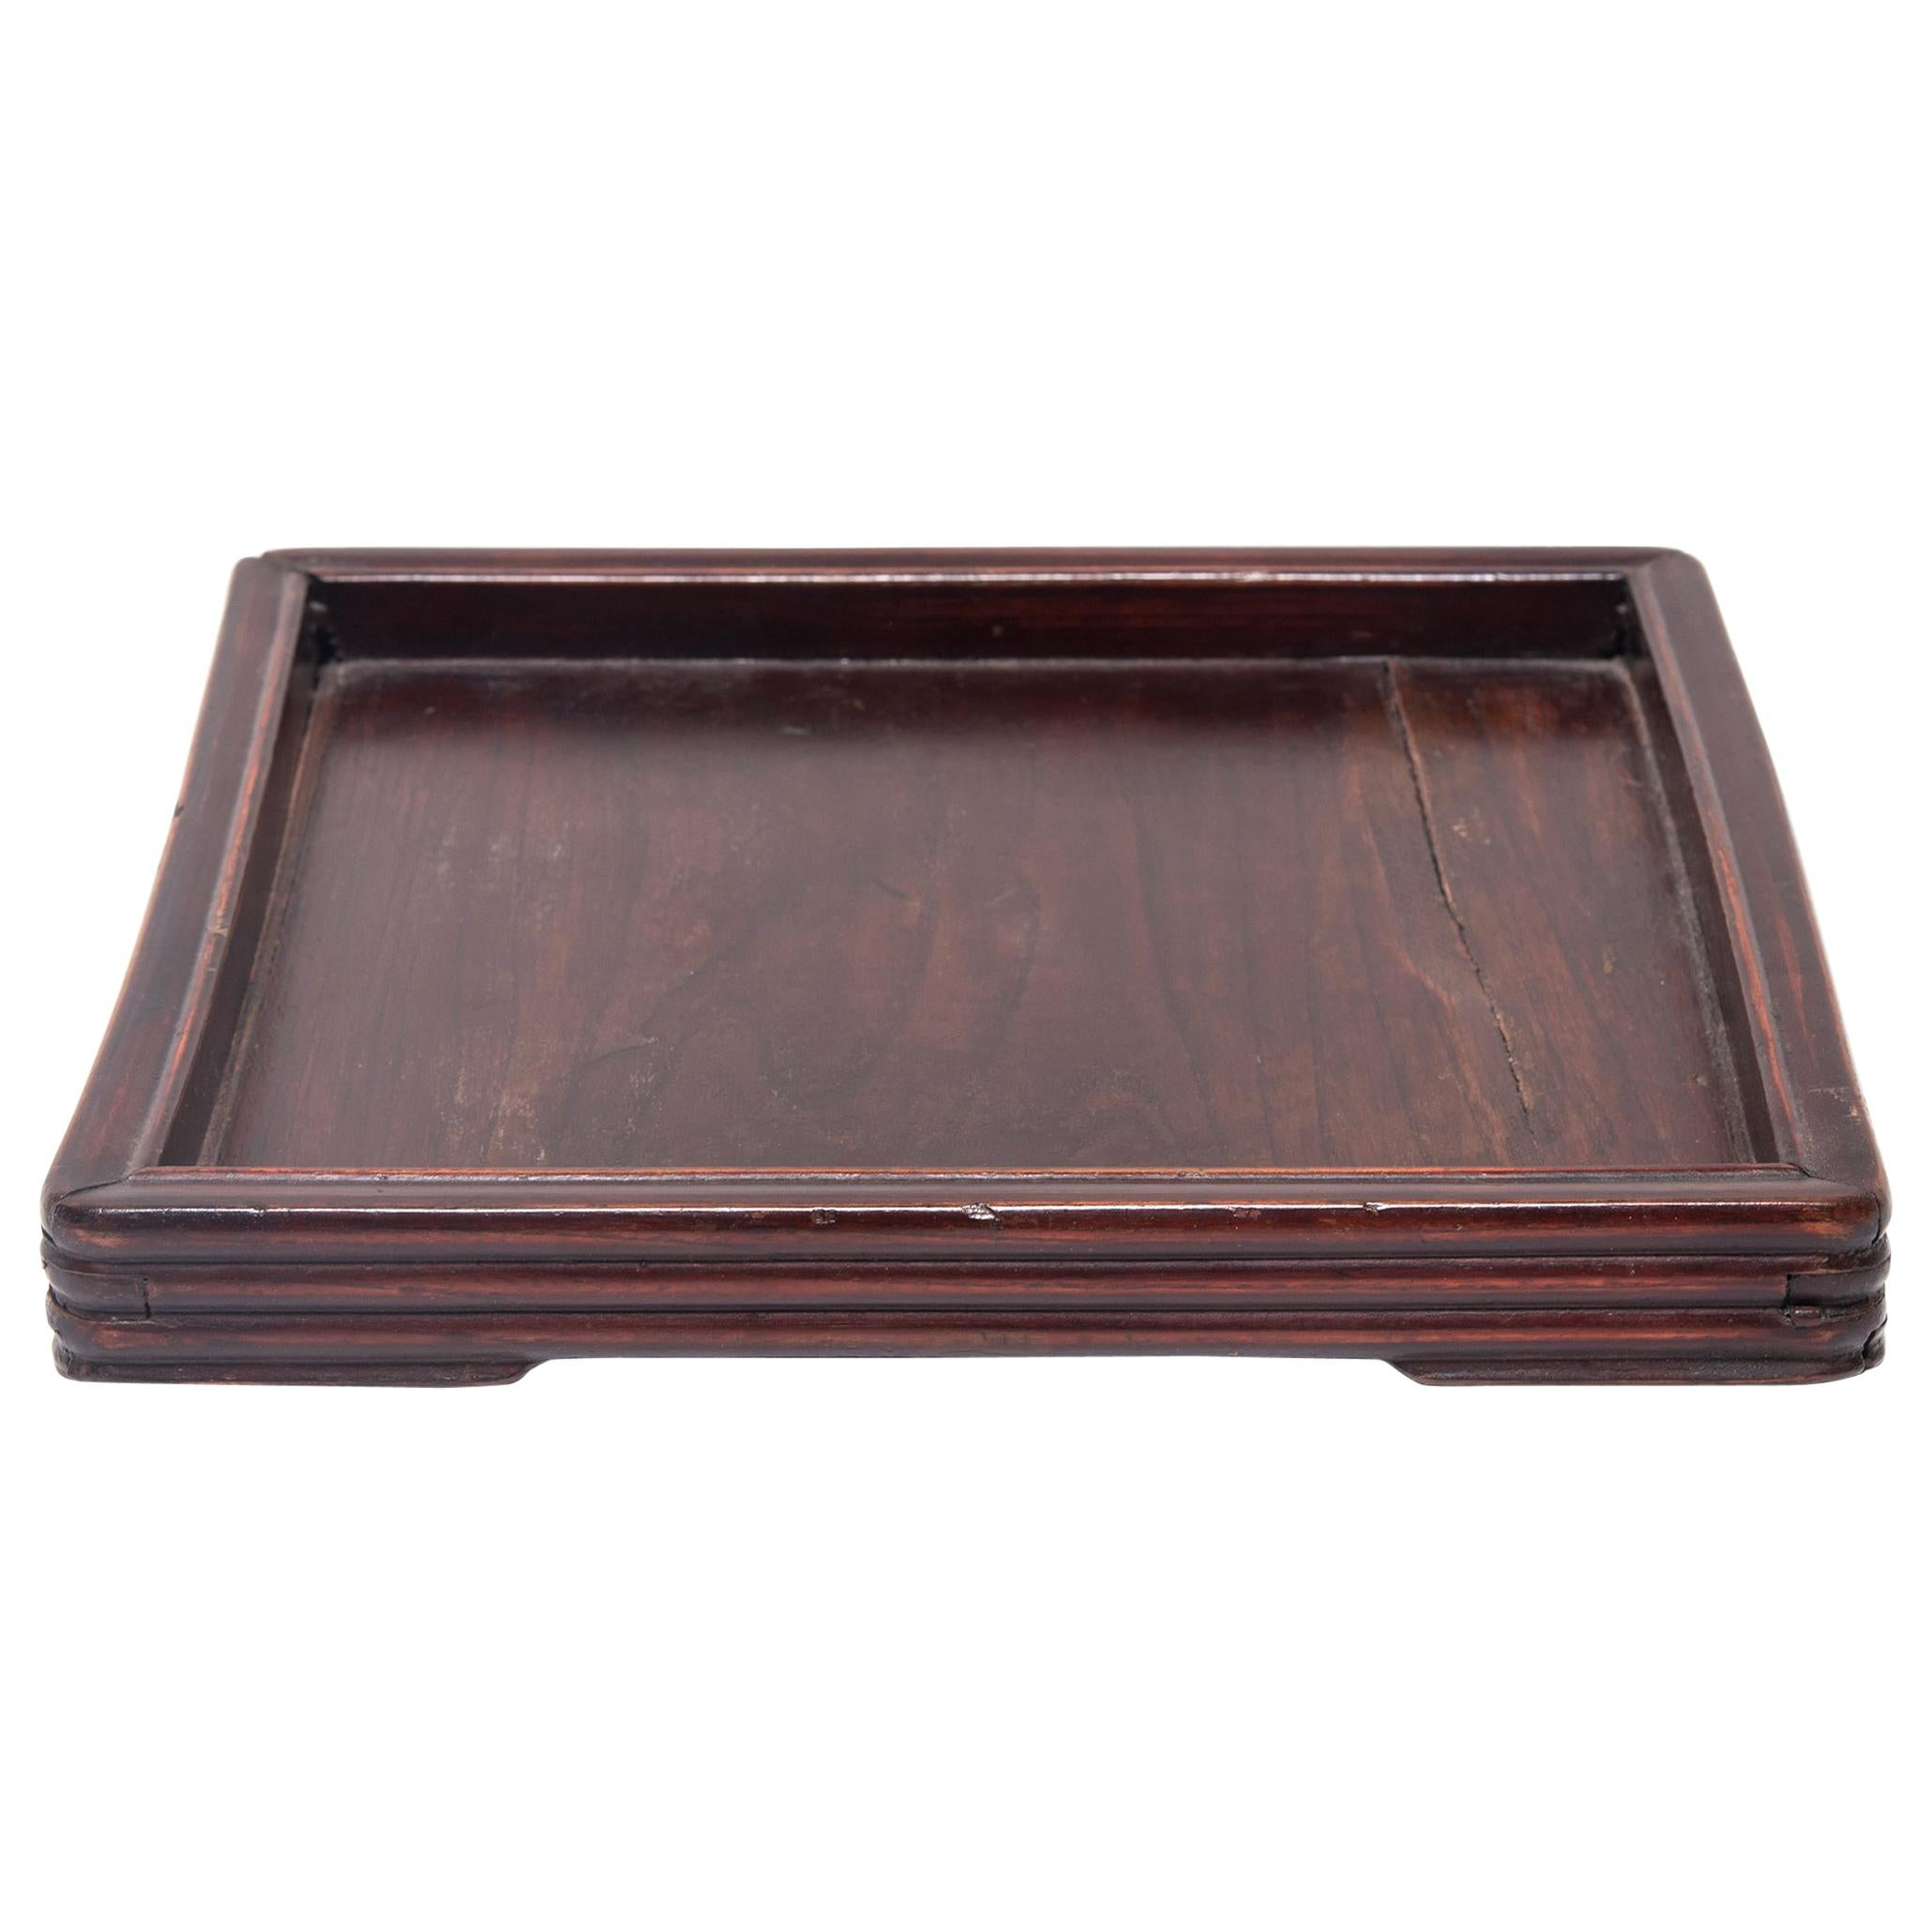 Early 20th Century Chinese Tray with Ridged Edges